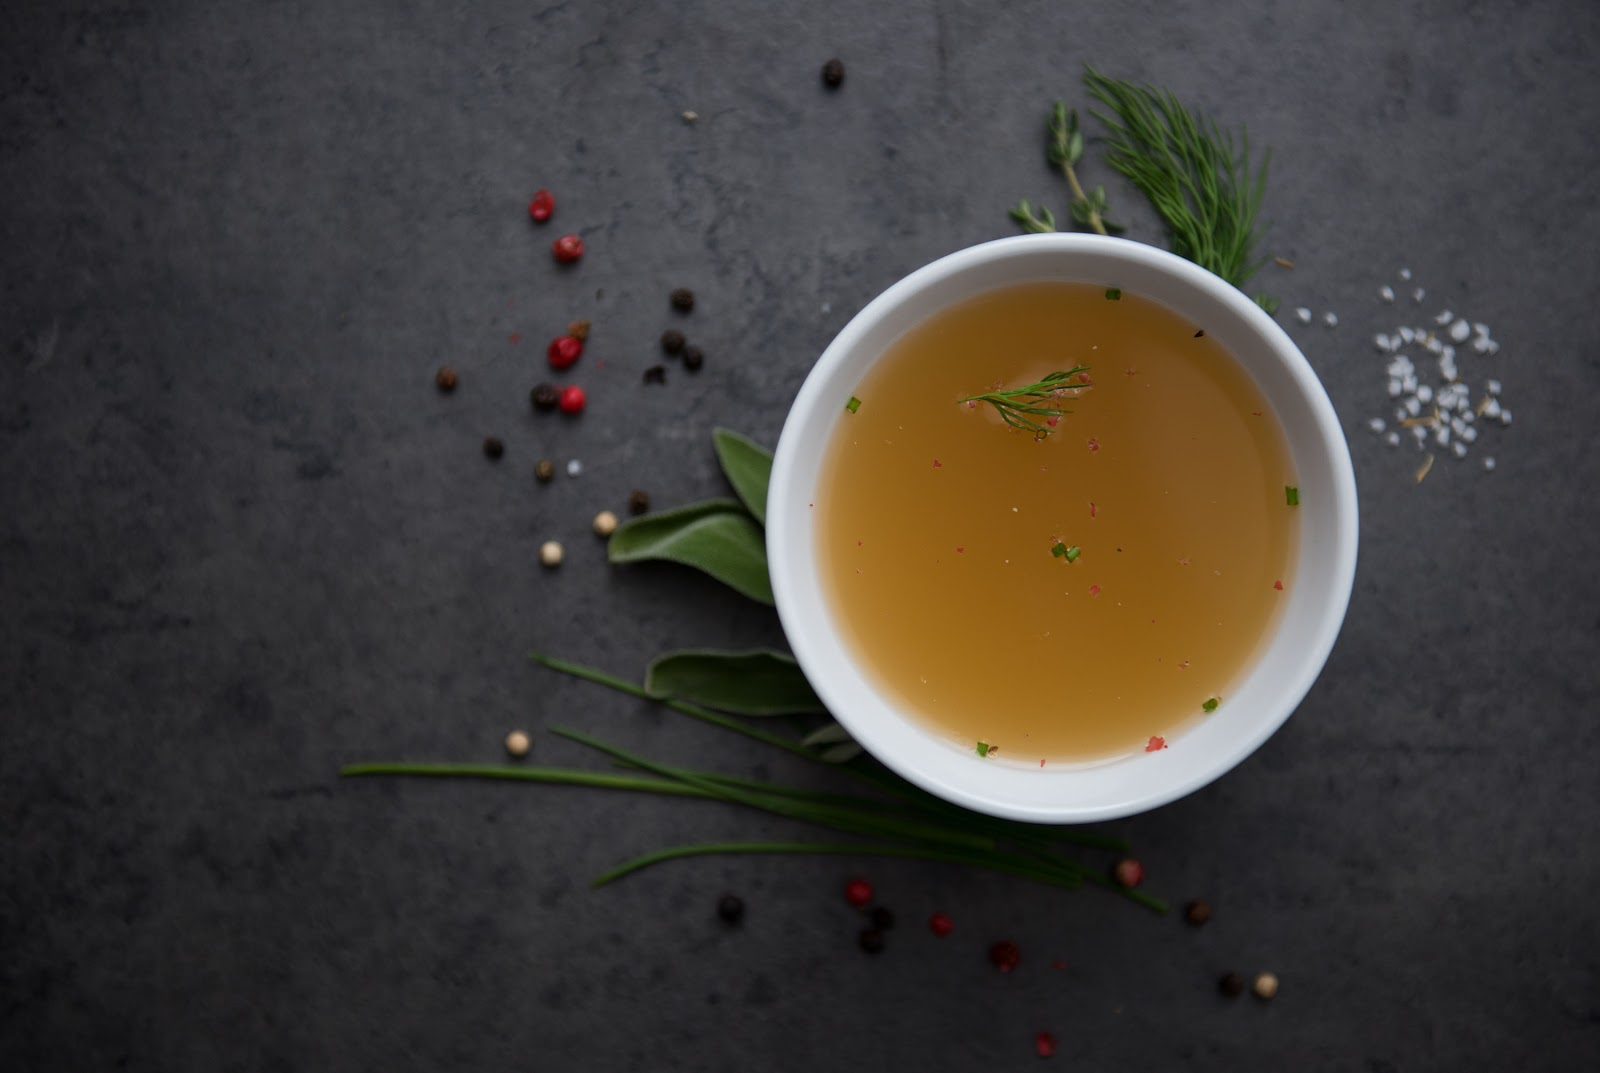 Bone broth is one of the top foods with collagen